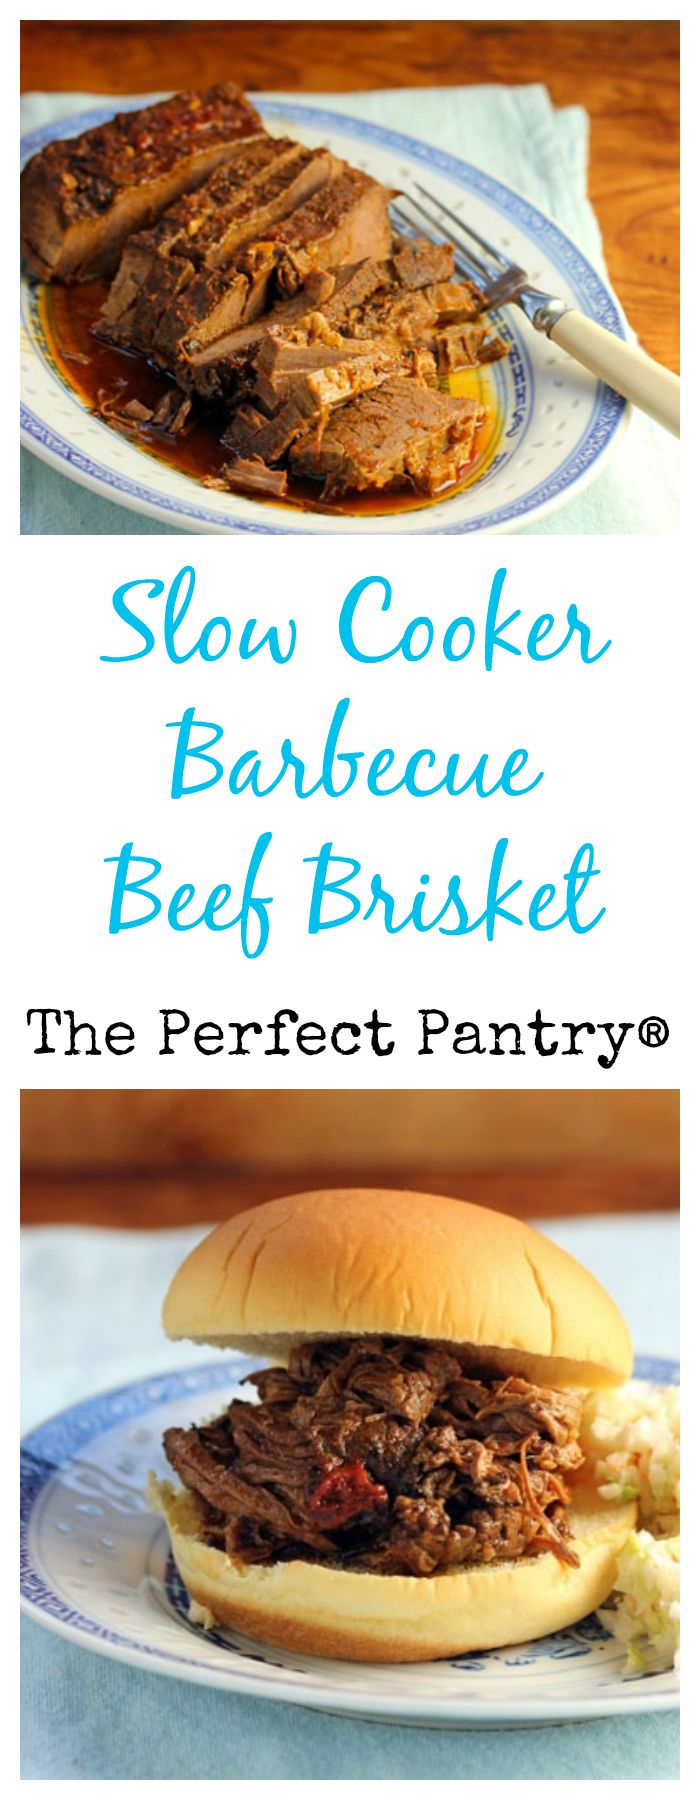 Slow cooker barbecue beef brisket tastes great sliced or shredded. From The Perfect Pantry.